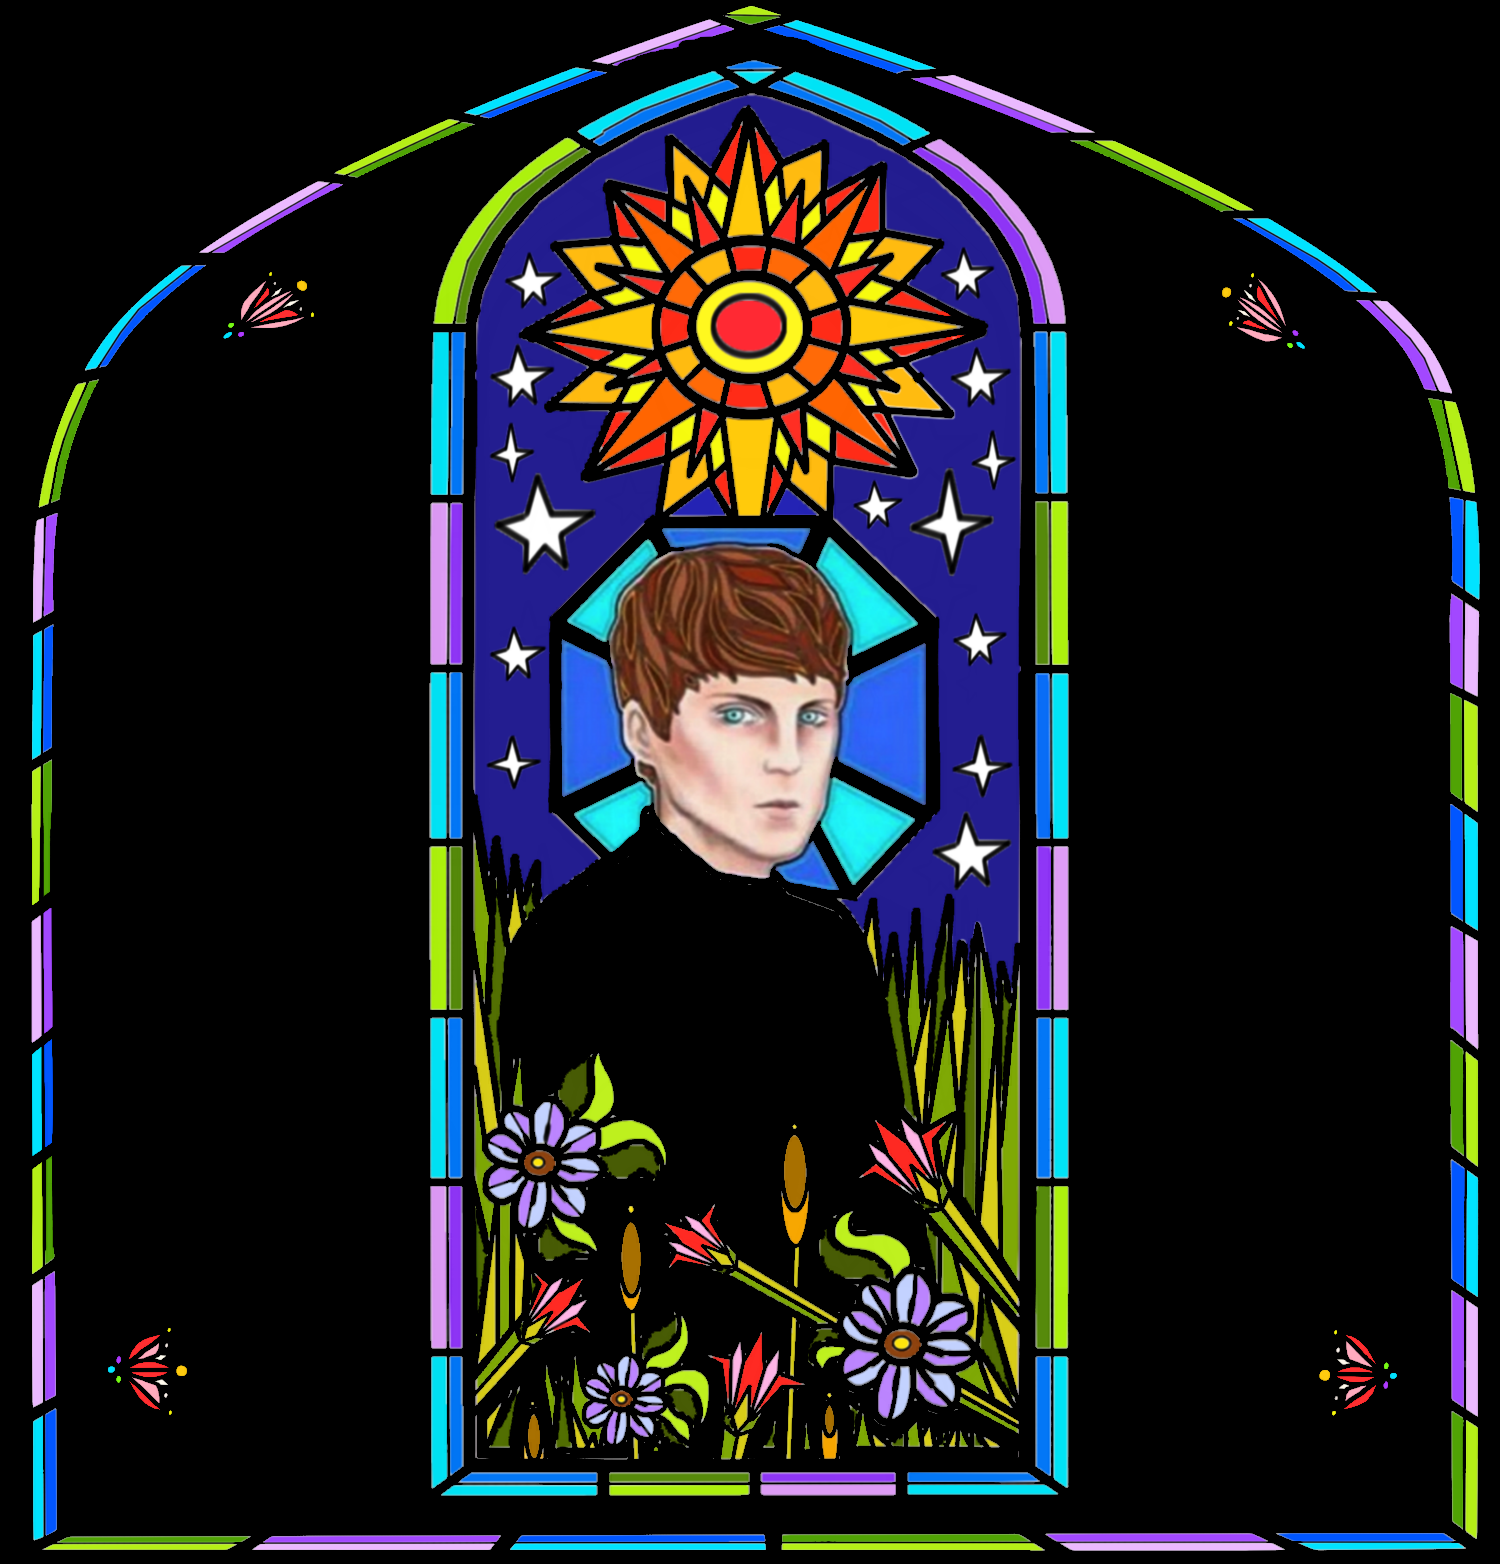 free-printable-stained-glass-window-coloring-pages-14+copy+10.png